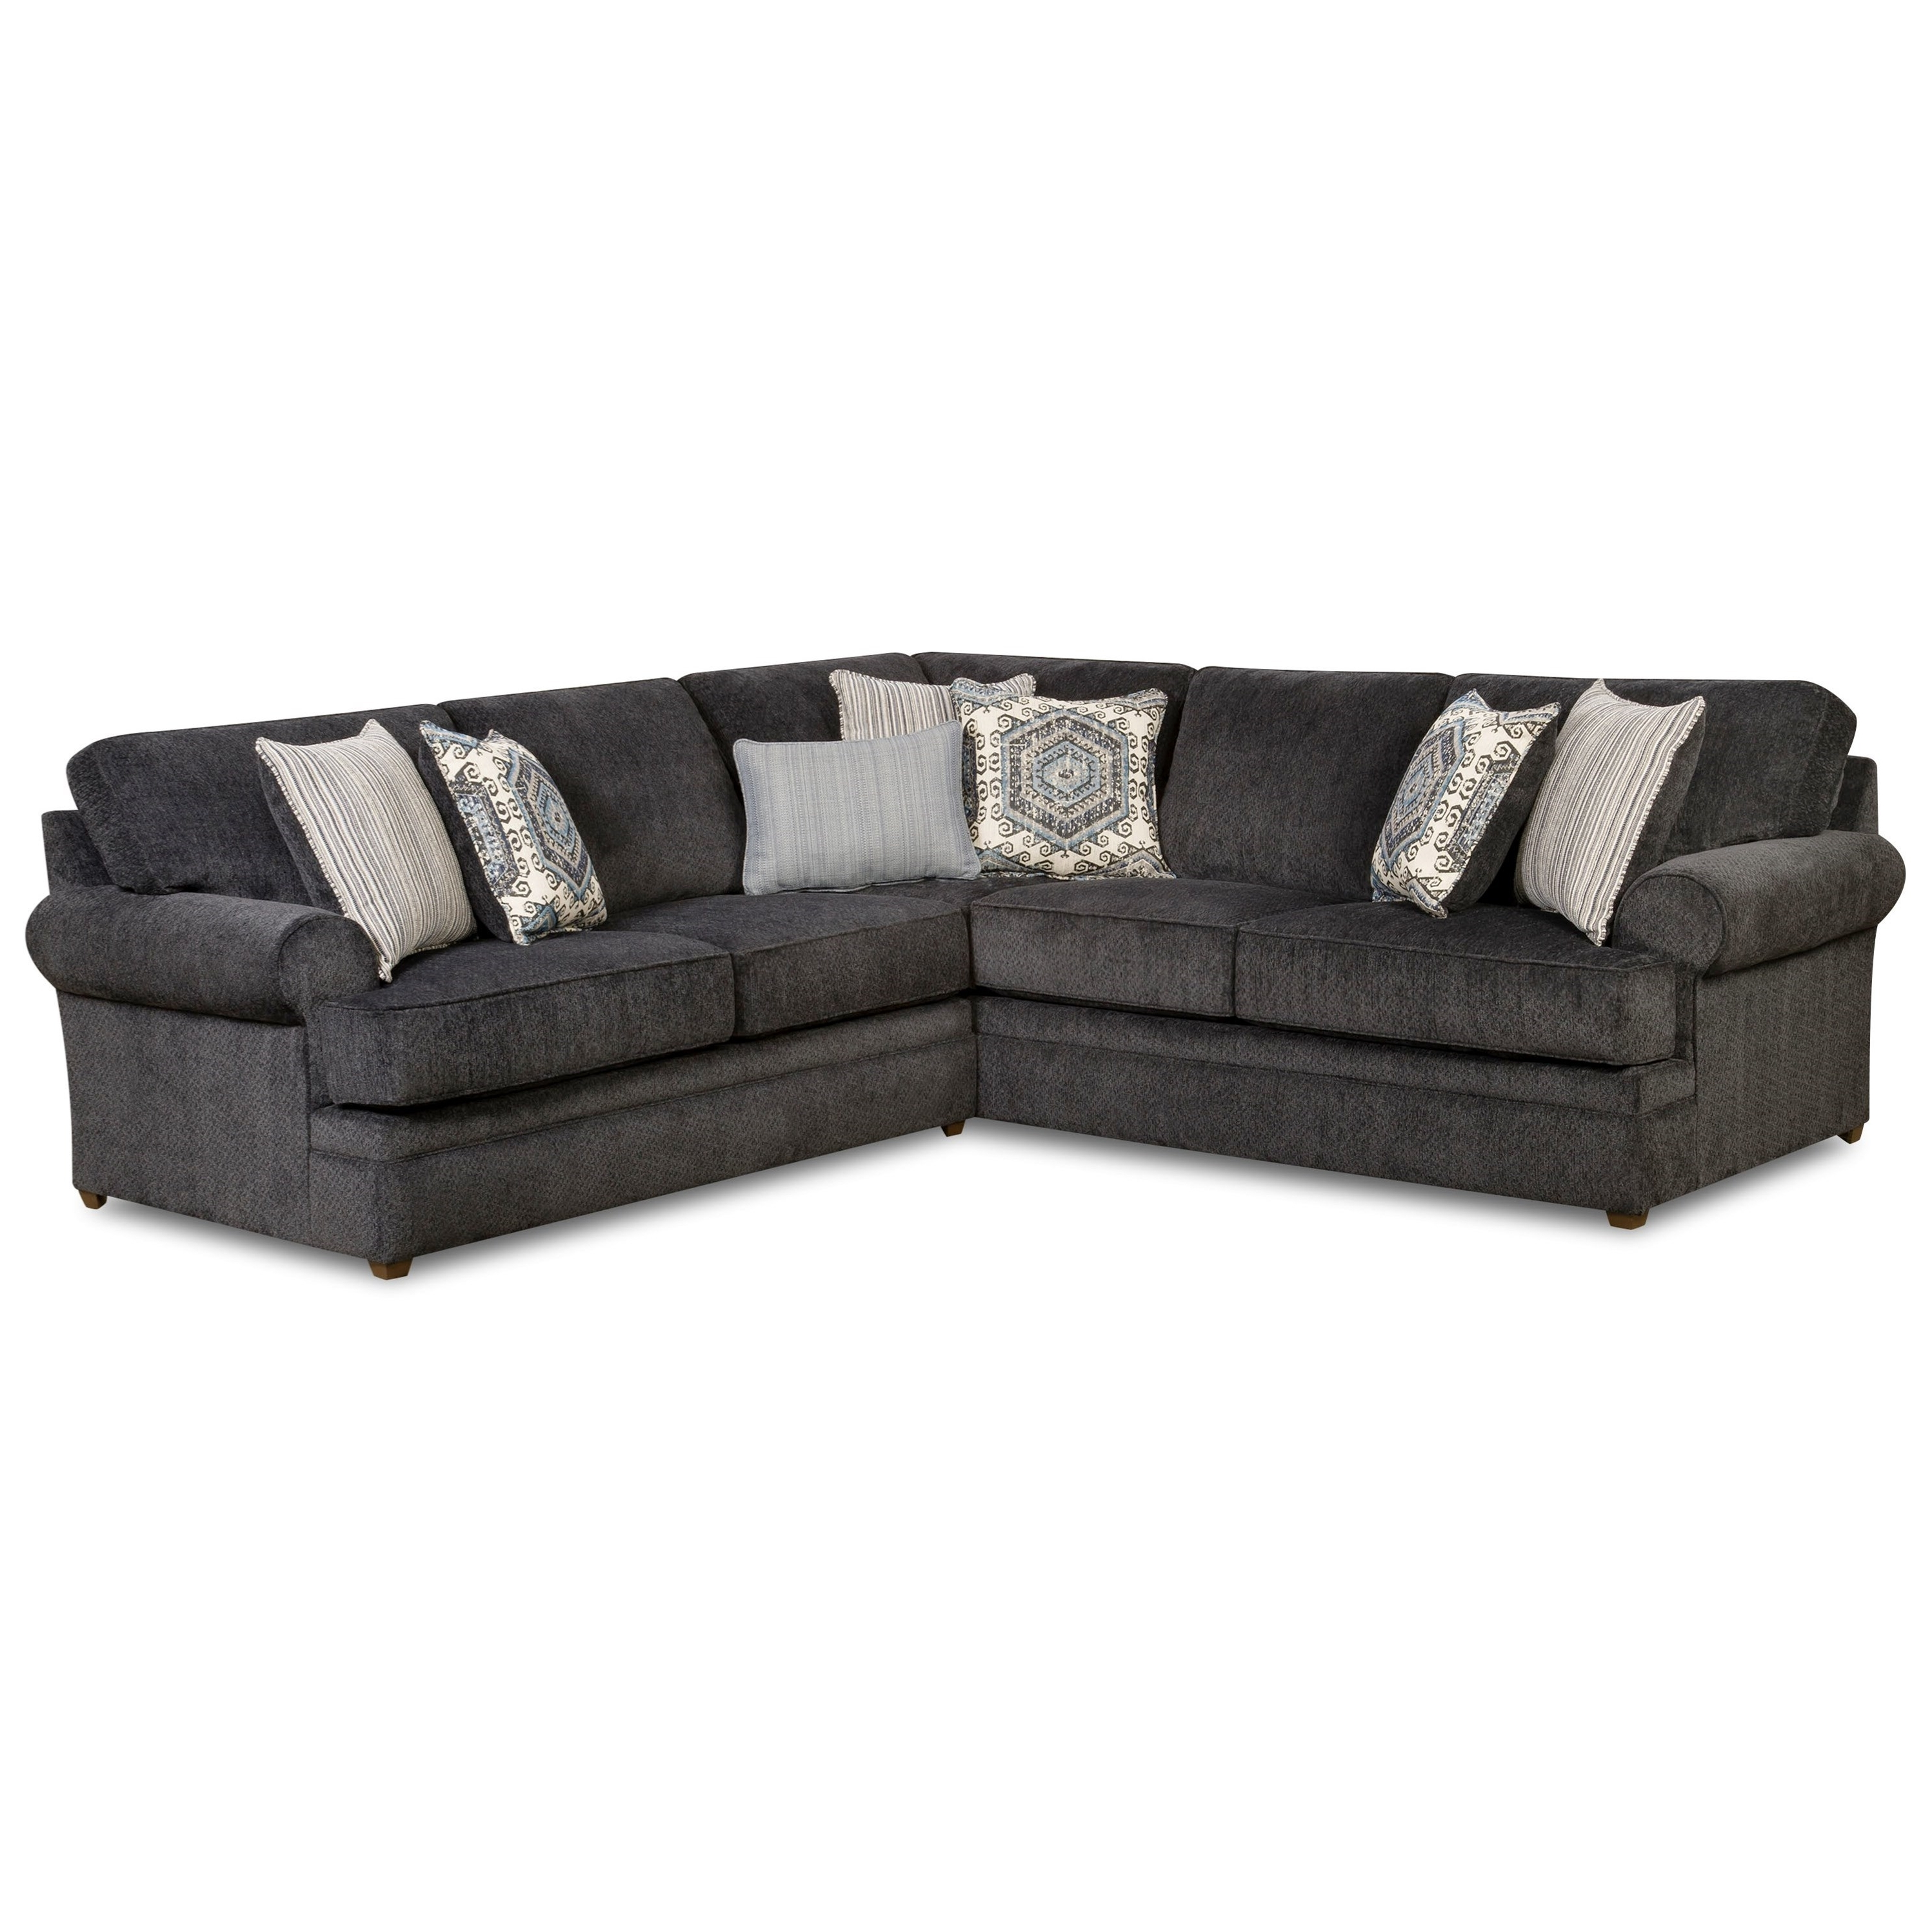 Simmons Upholstery 8530 Br Transitional Sectional Sofa With Rolled With  Regard To Widely Used Sectional Sofas